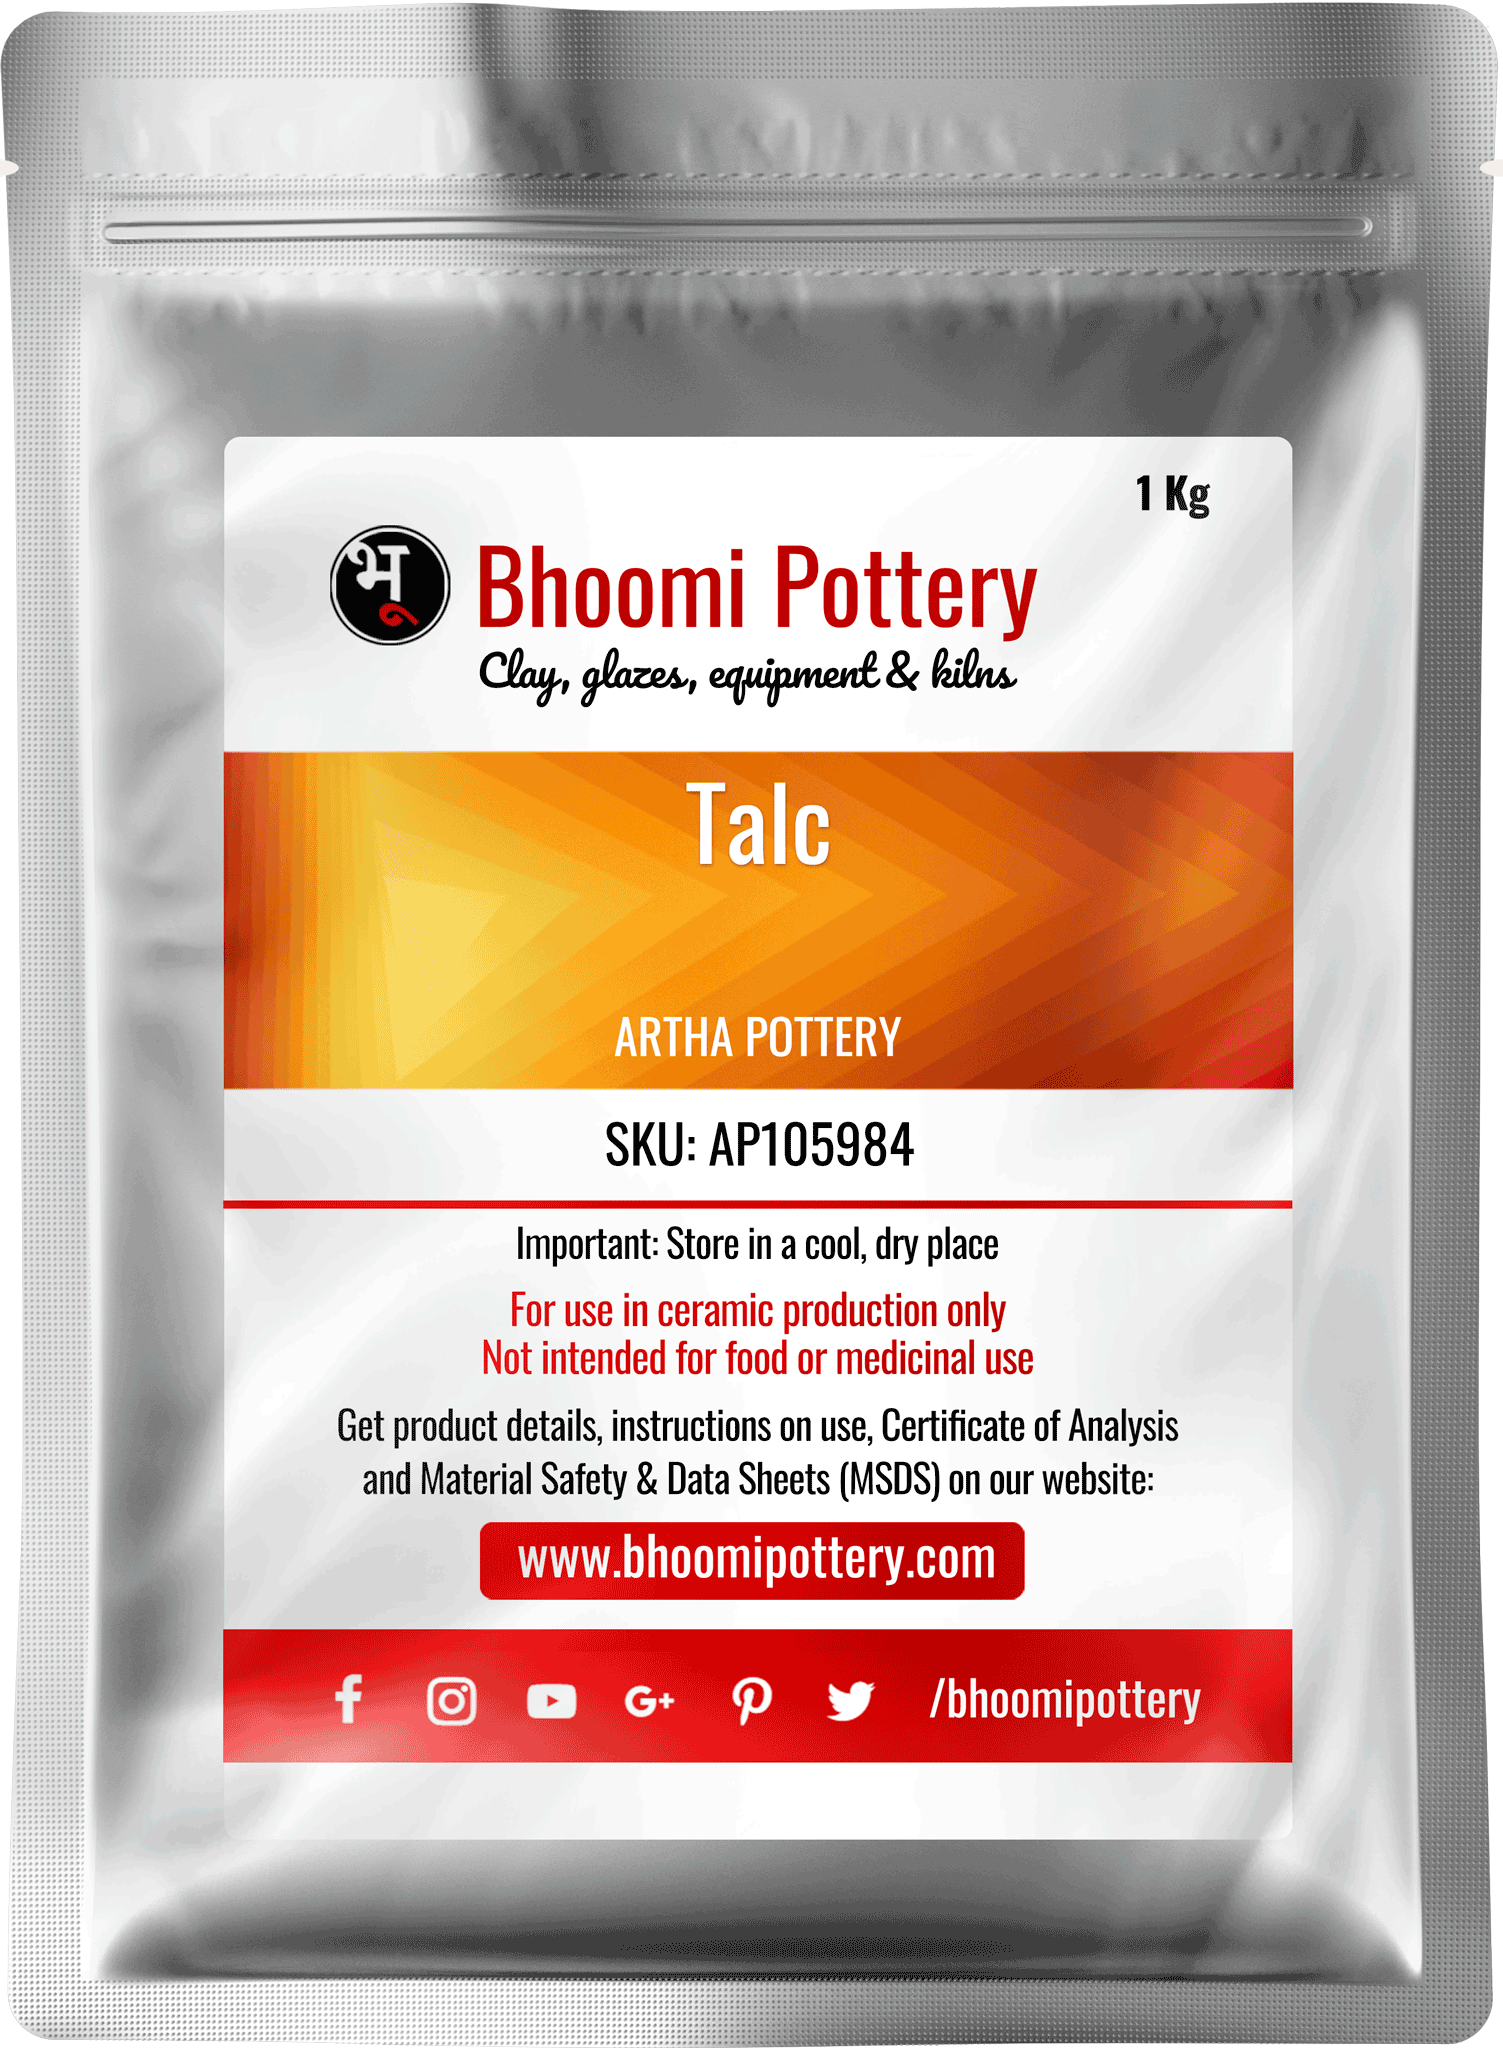 Artha Pottery Talc 1 Kg for sale in India - Bhoomi Pottery